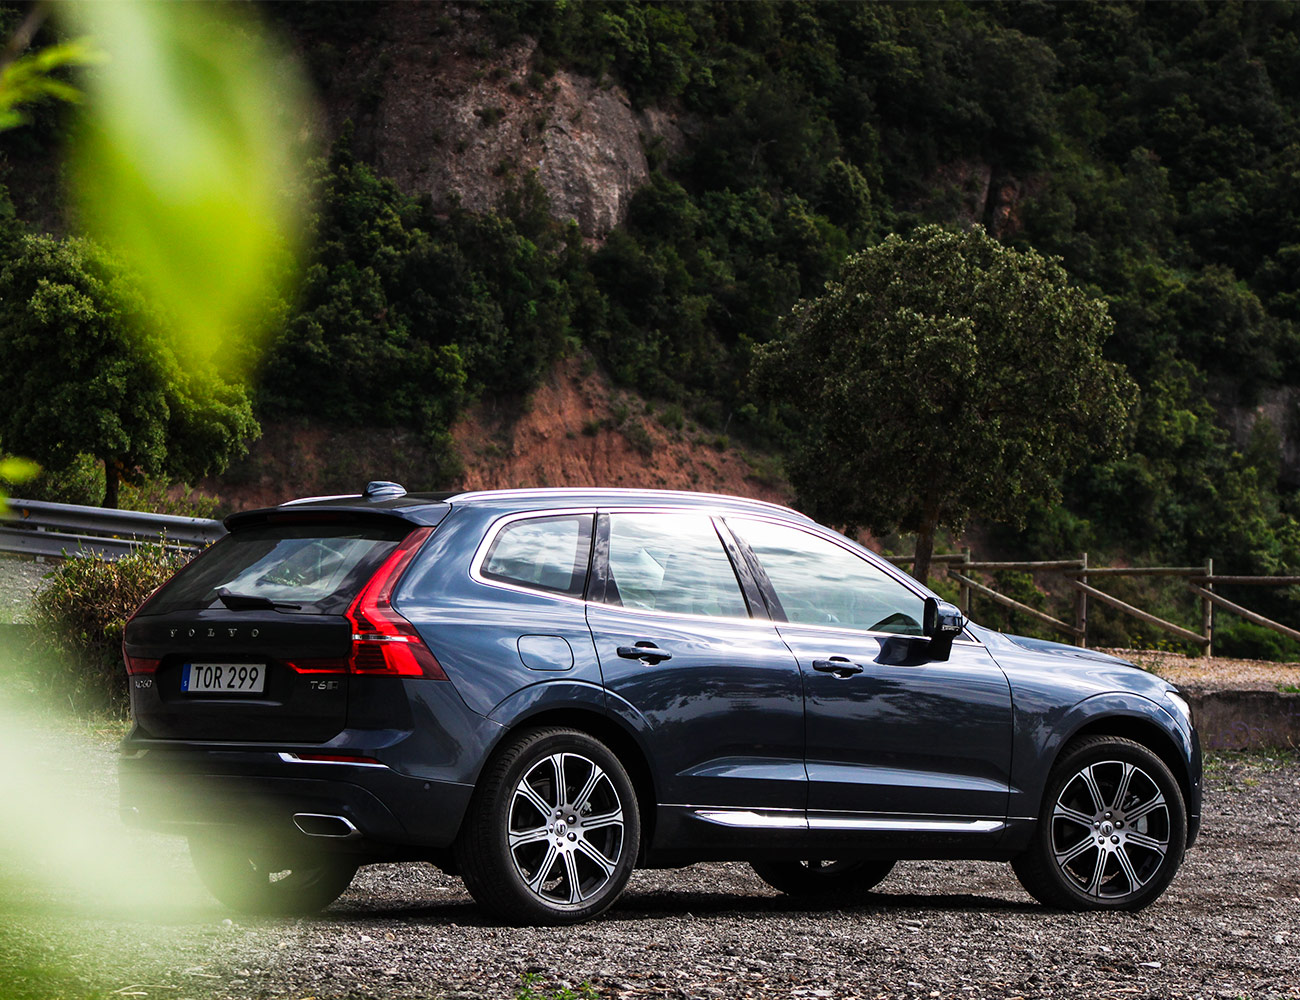 Two Reasons to Like the 2018 Volvo XC60 (And One Major Reason Not To)